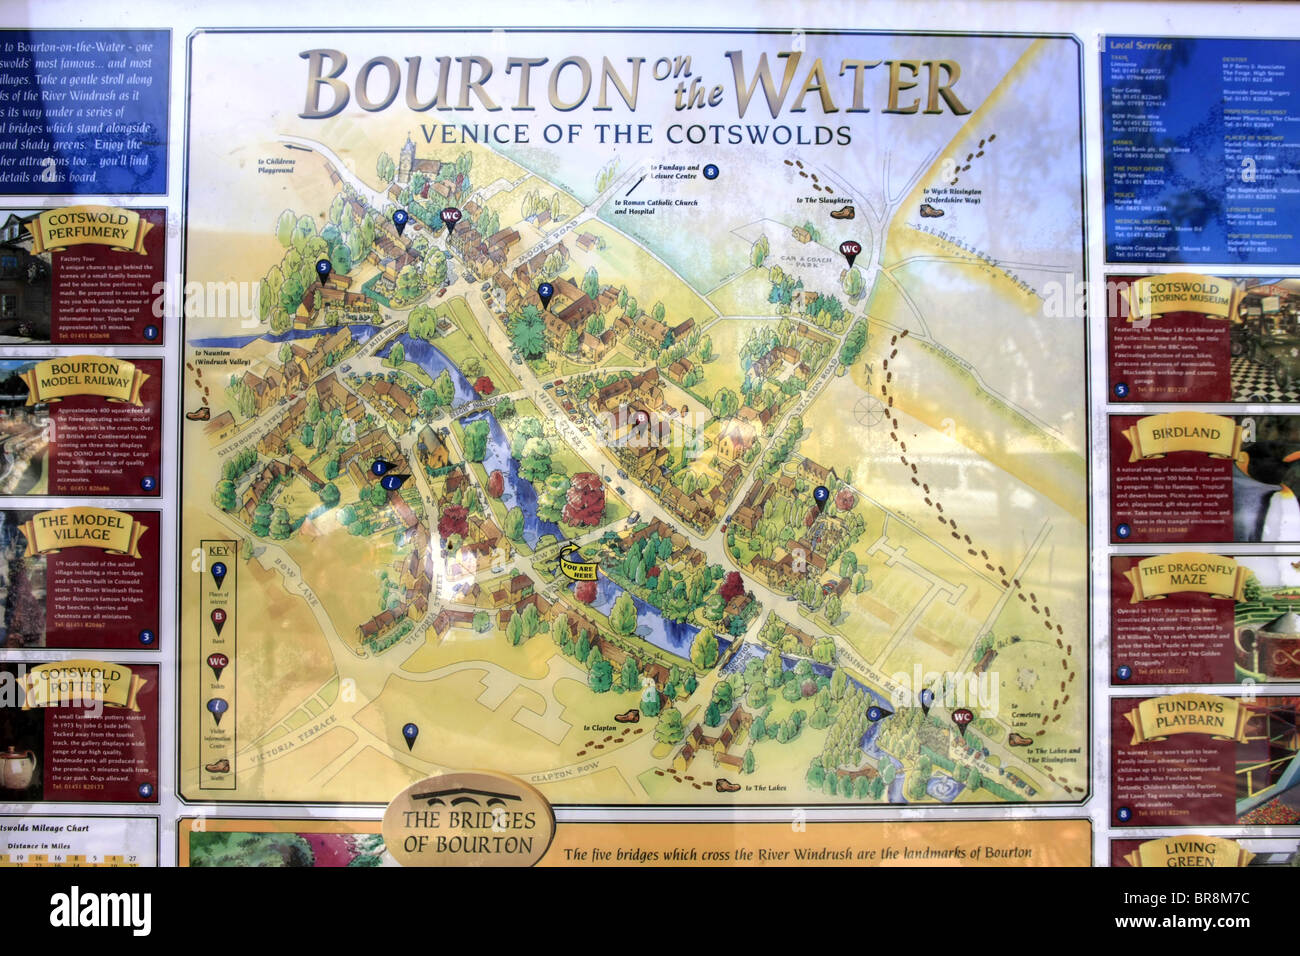 A Colorful Map Of The Little Town Of BourtonOnTheWater Venice - Little venice map